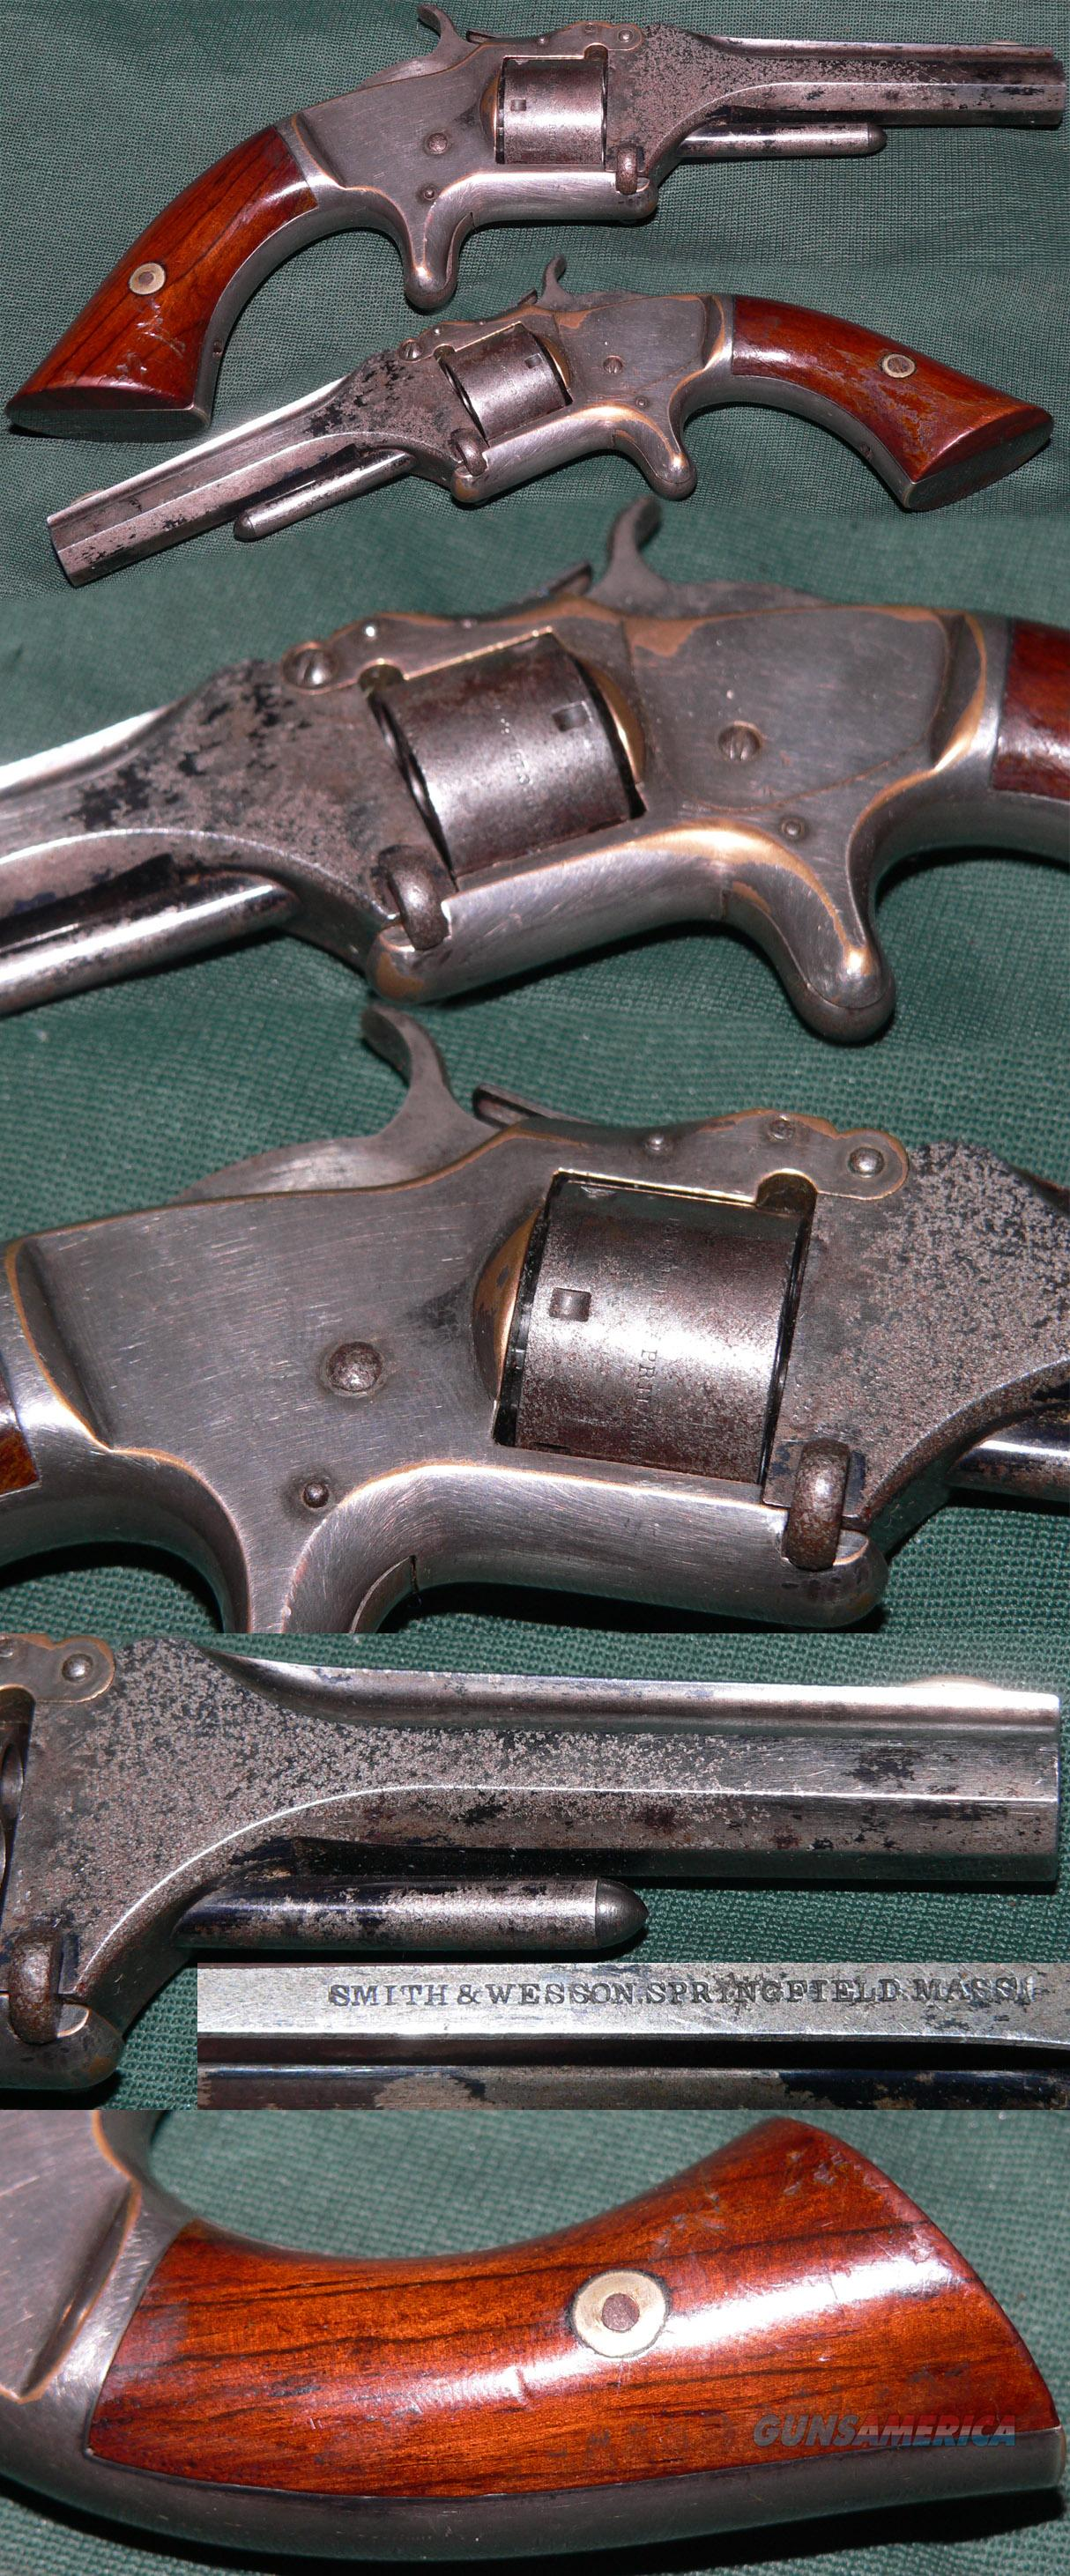 Smith & Wesson 1st Model, 2nd Issue .22 caliber revolver  Guns > Pistols > Smith & Wesson Revolvers > Pre-1899